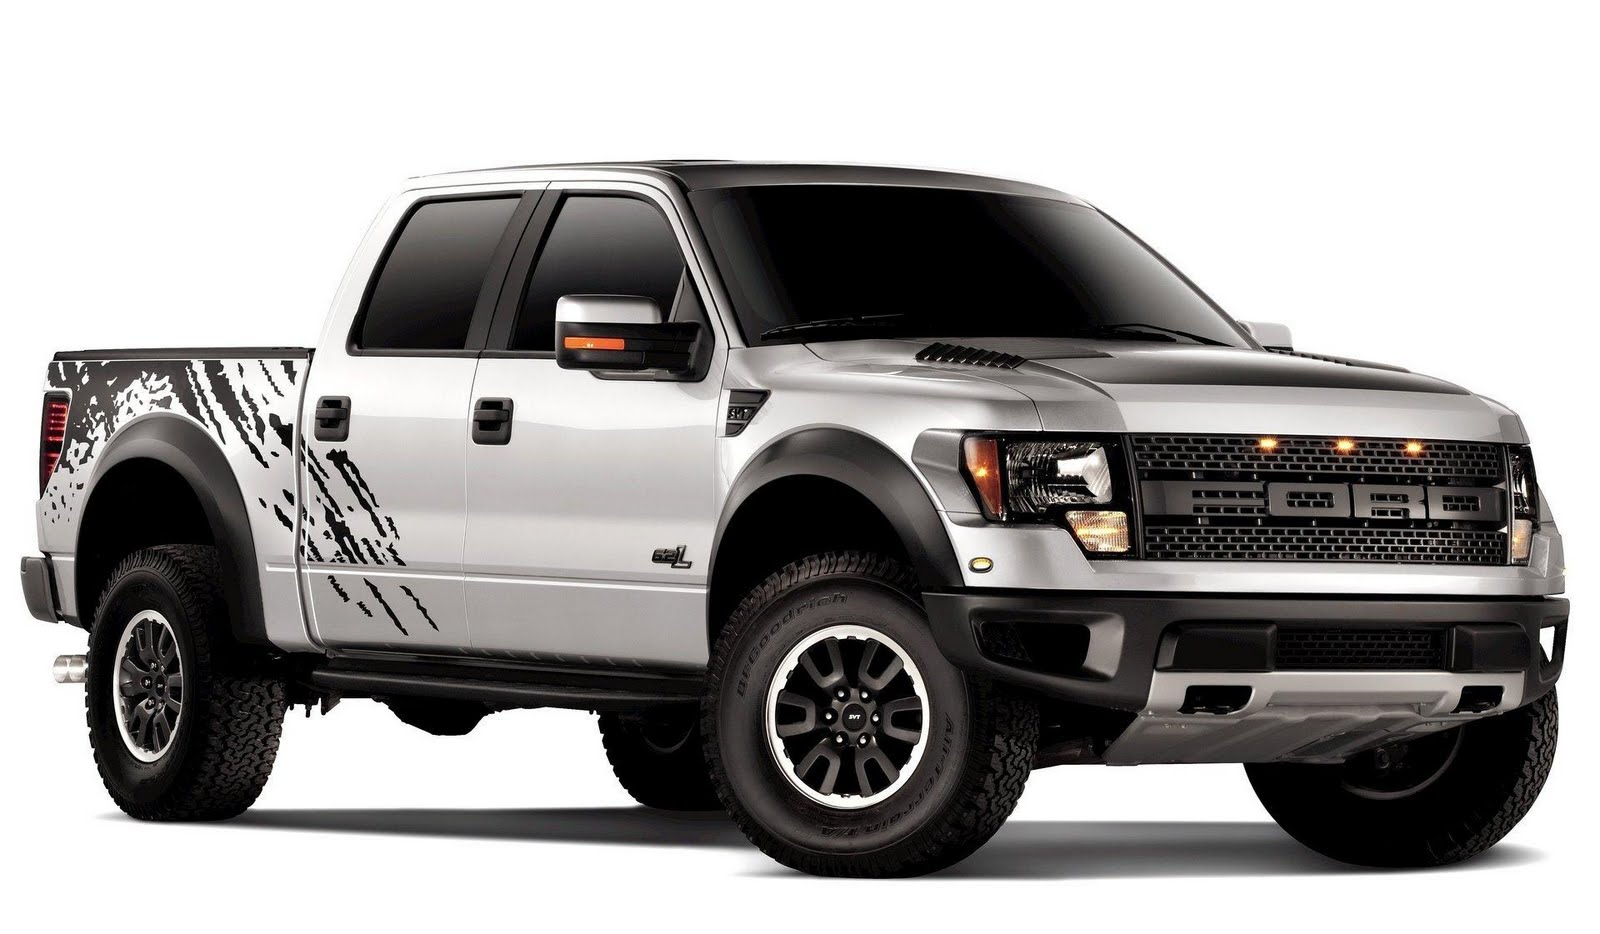 Ford Truck HD Wallpapers Ford Truck Pictures Cool Wallpapers 1600x934